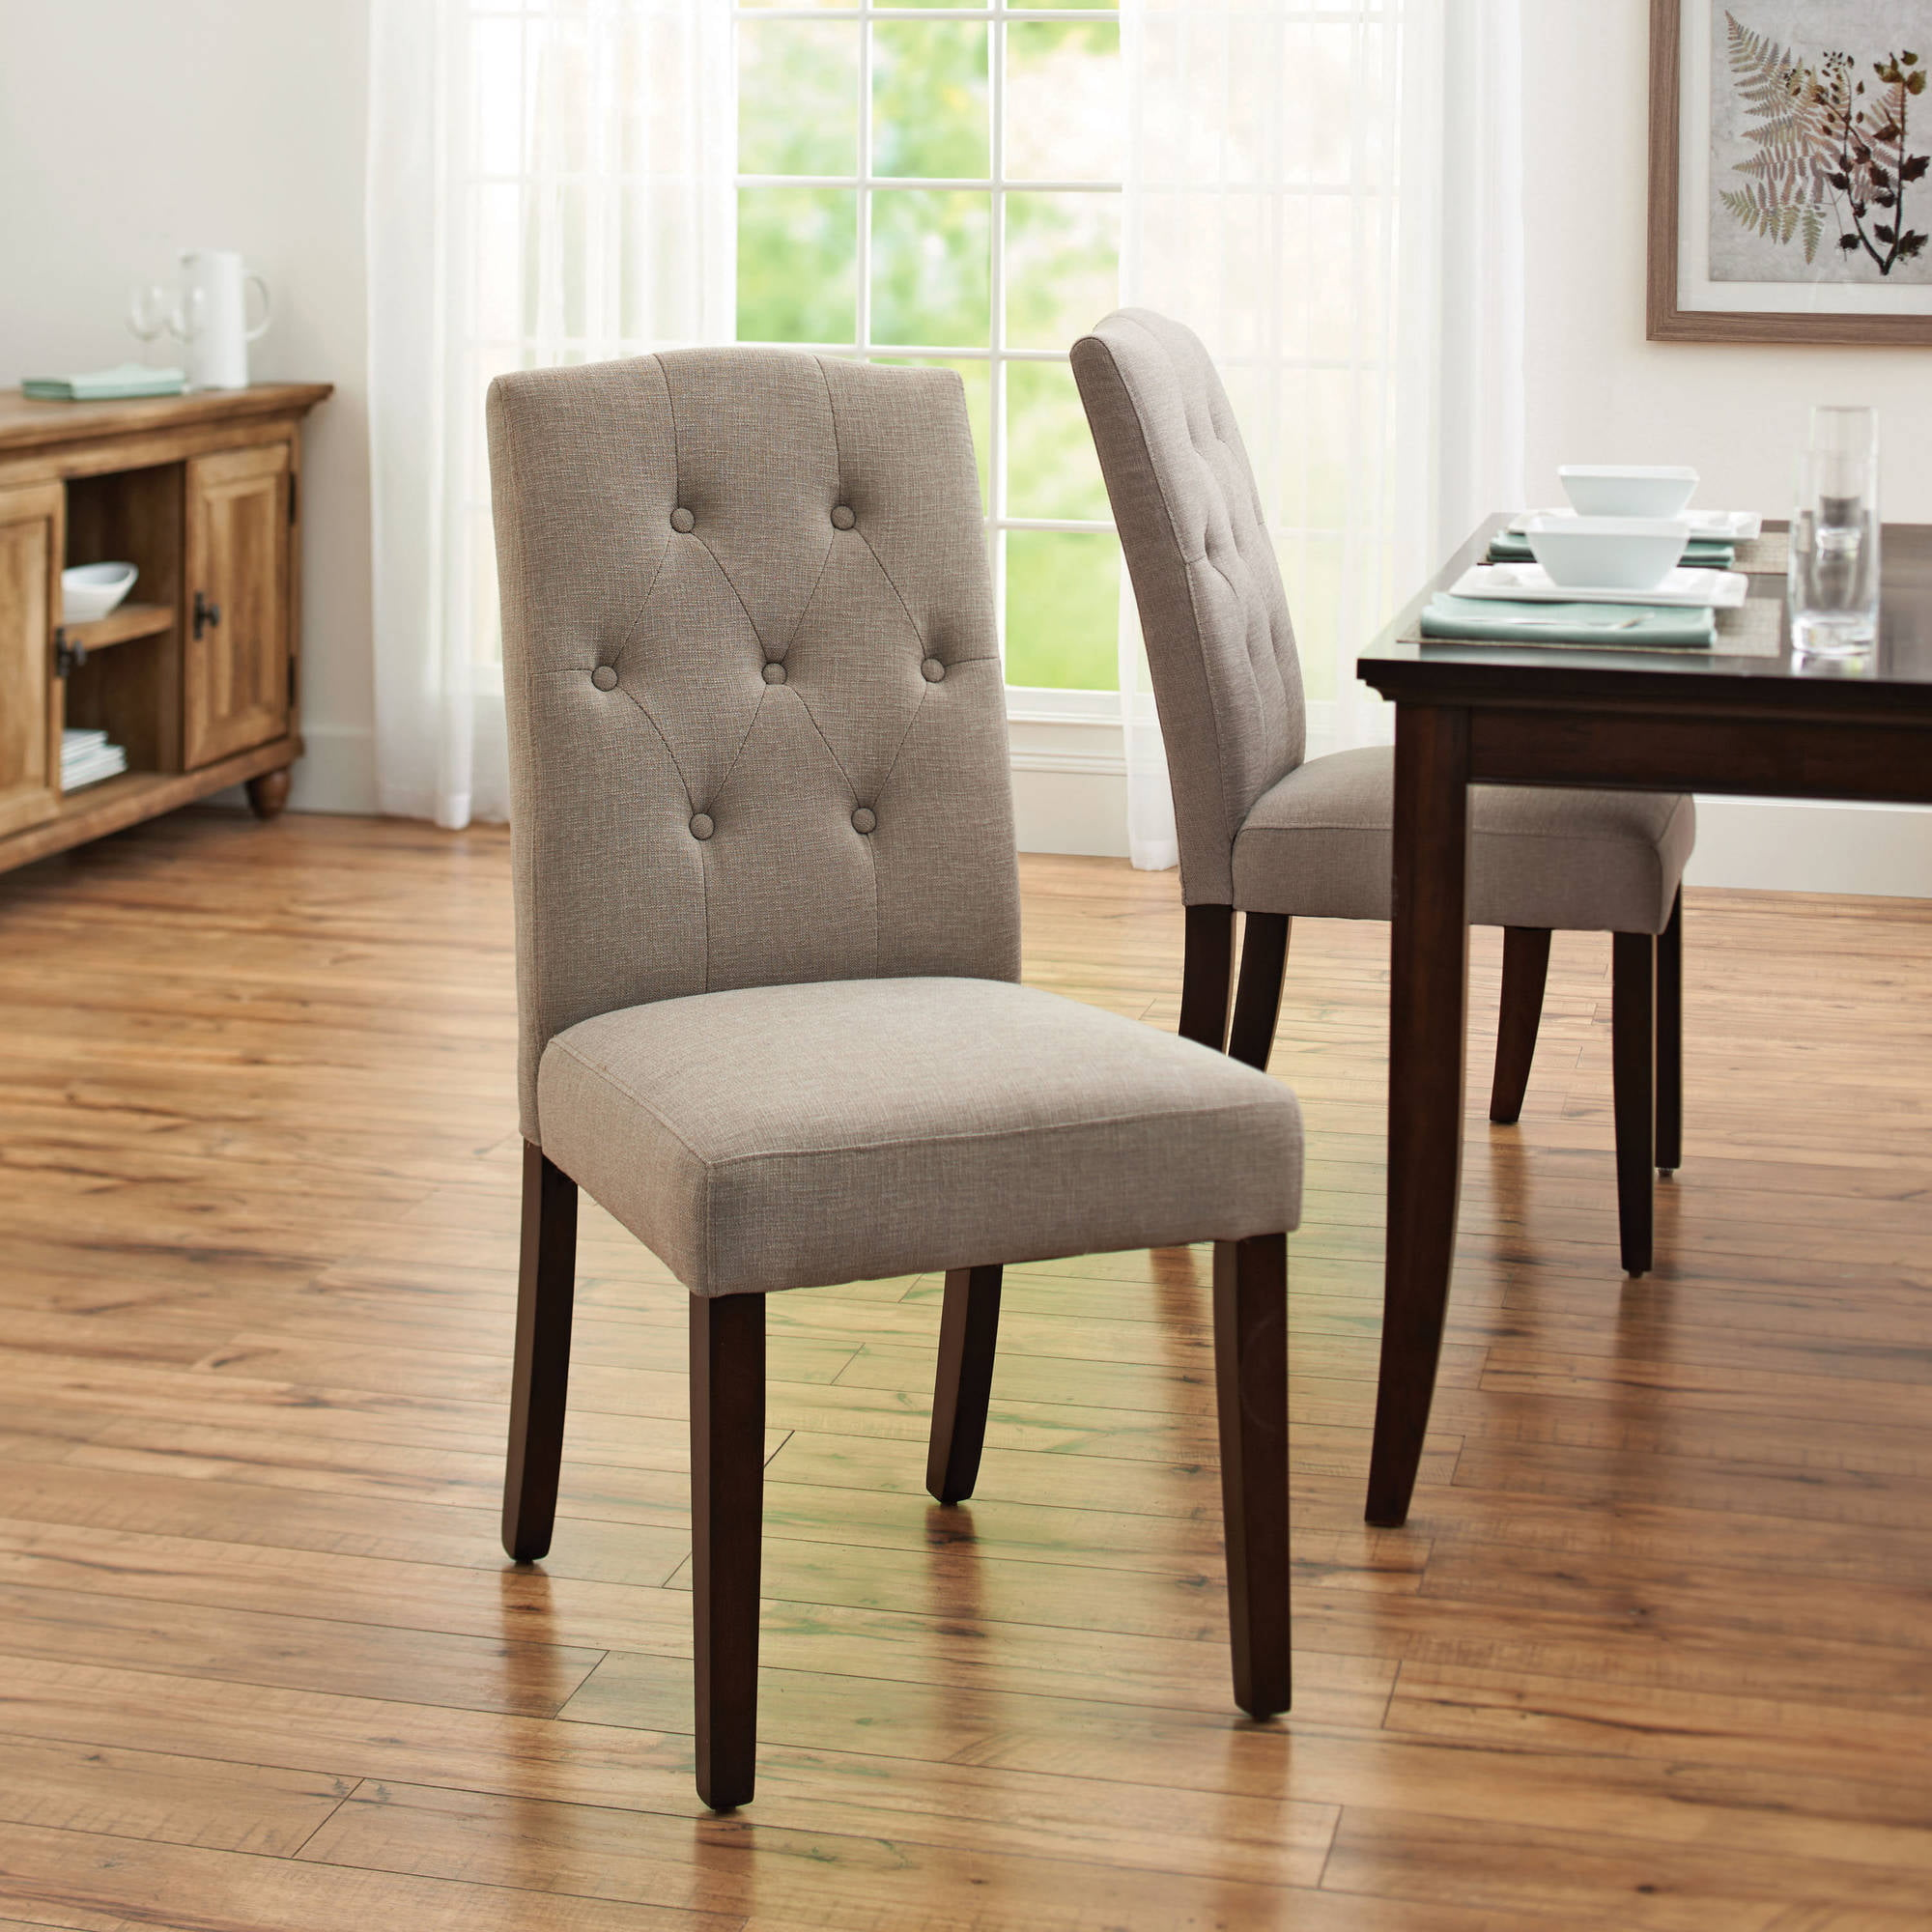 mainstays 6-pack dining chair set, rich espresso finish - walmart